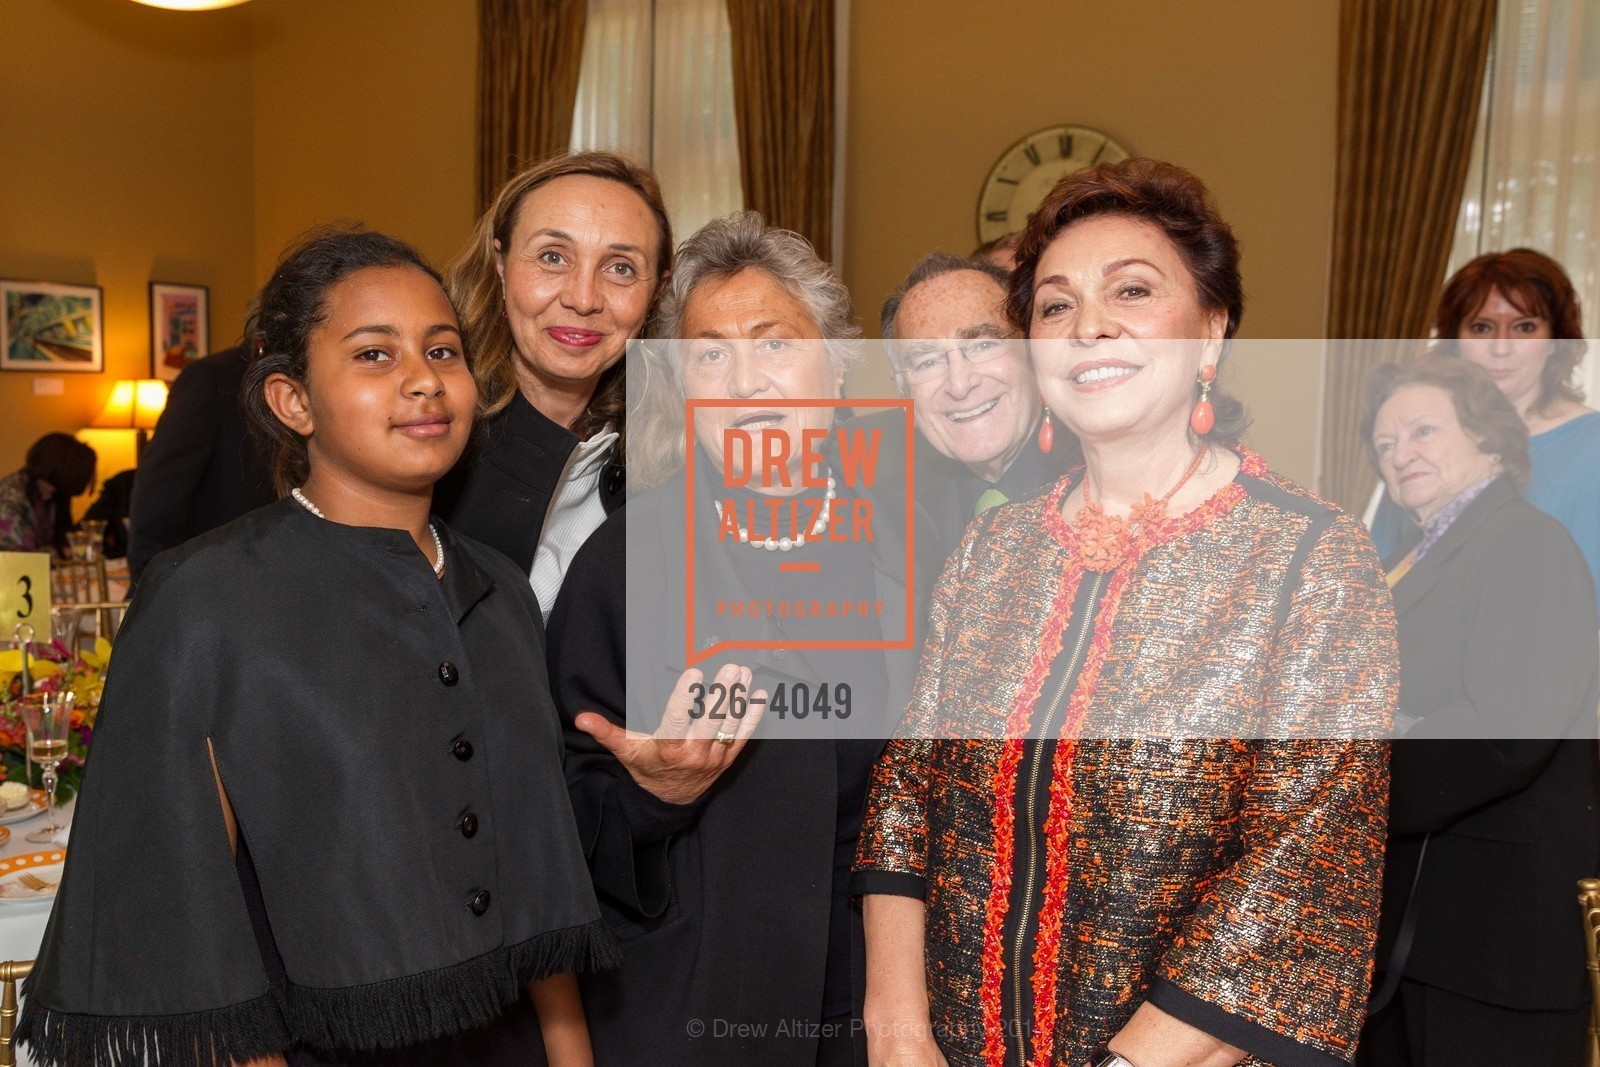 Camilla Ruini, Beatrice Ruini, Corina Manetti, Jan Shrem, Maria Manetti Shrem, Photo #326-4049